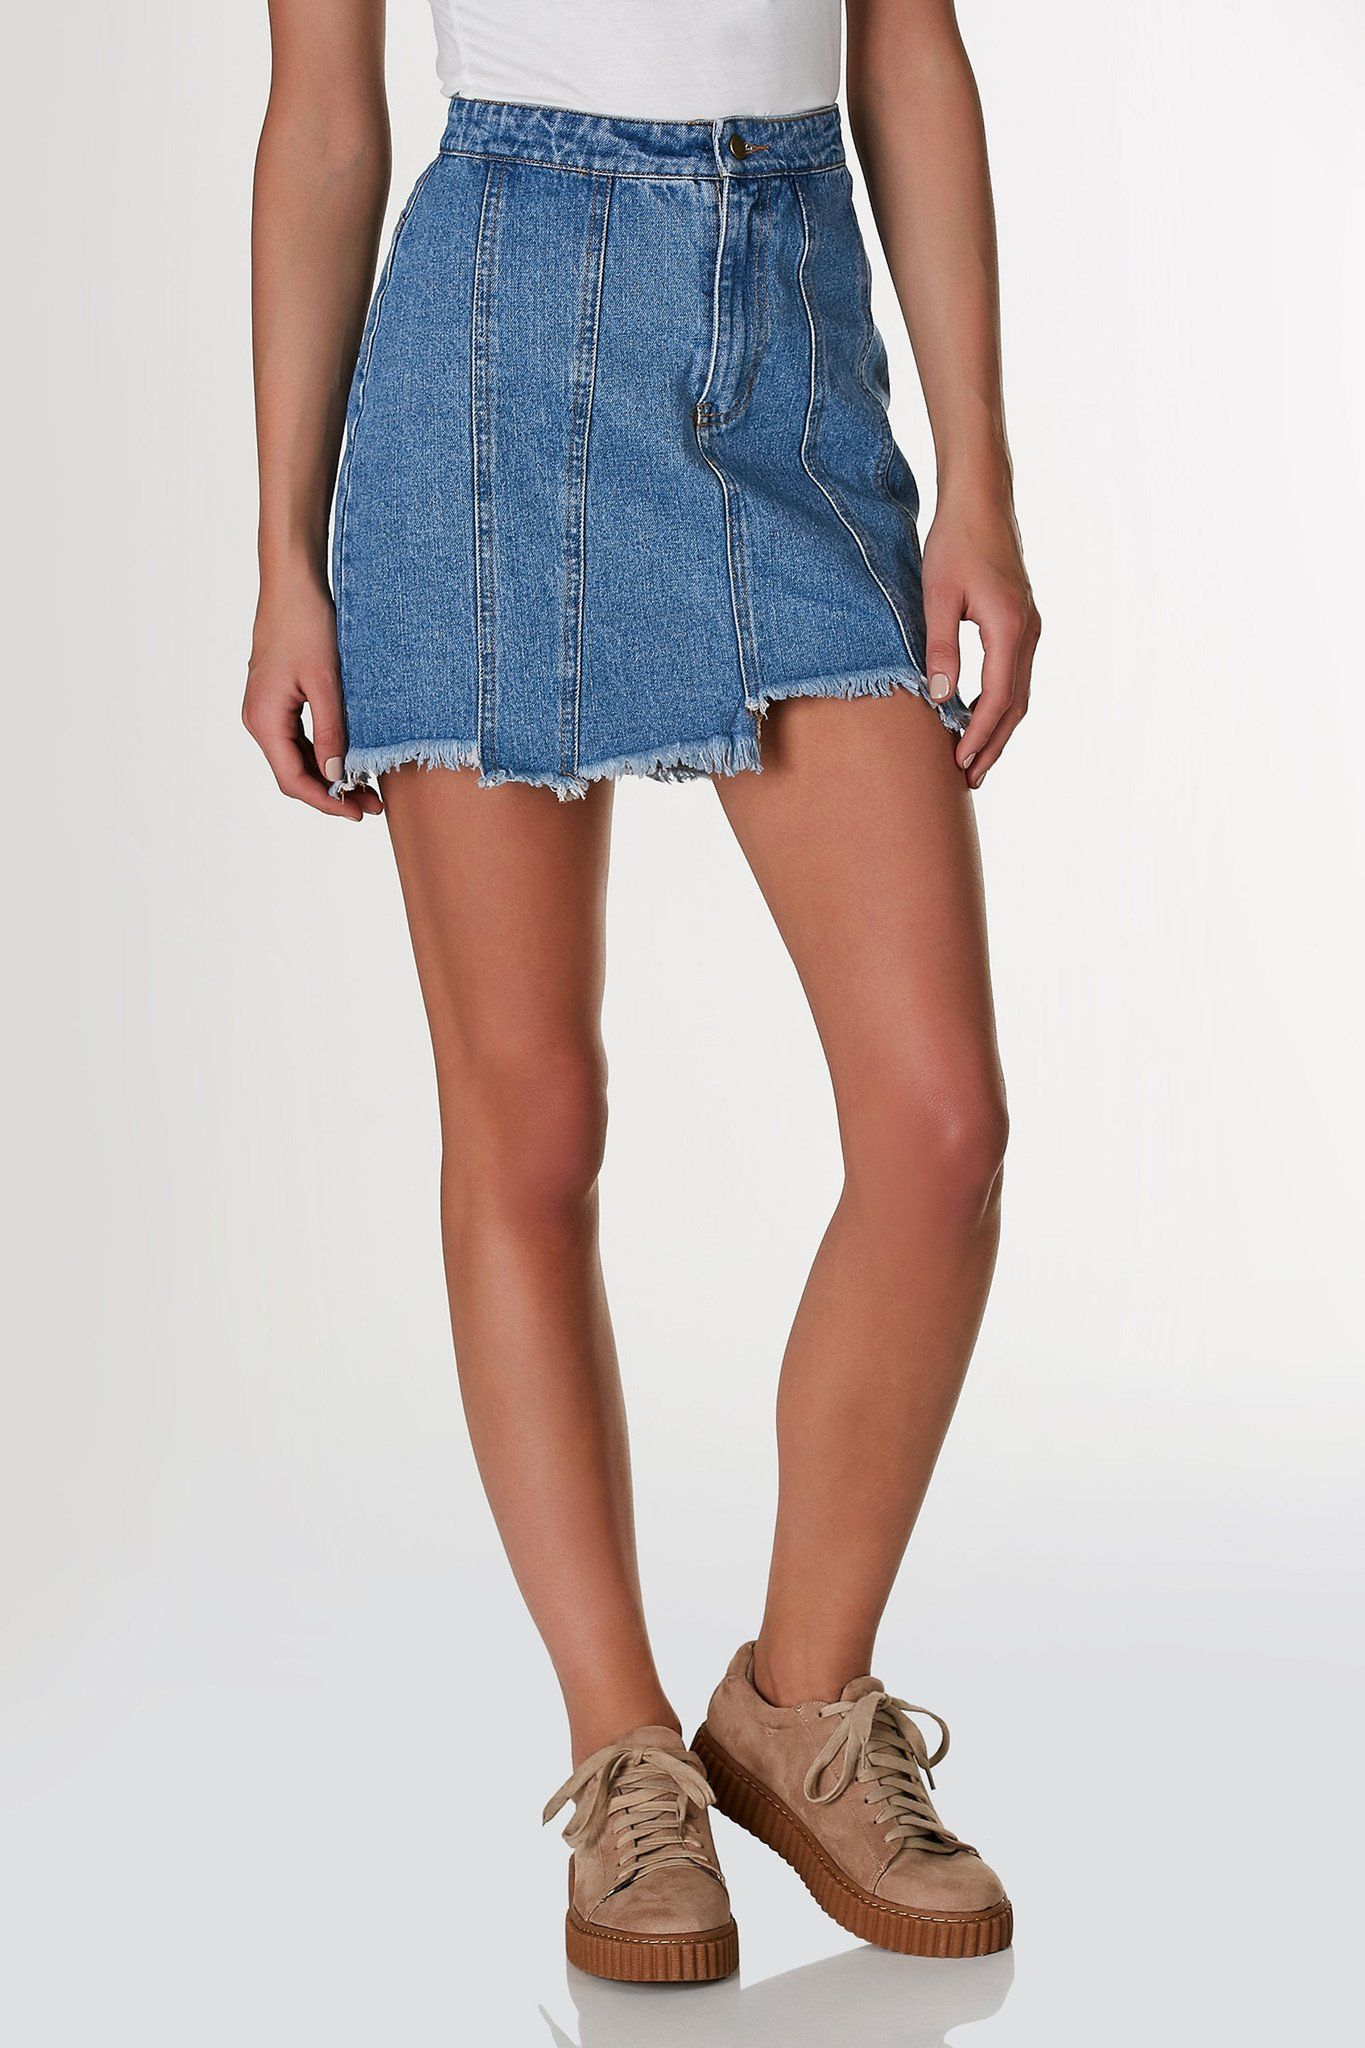 8d4499f47c High rise denim skirt with patched design and uneven raw hem finish. Faux  back pockets for added detail. Each piece is dyed individually and is ...